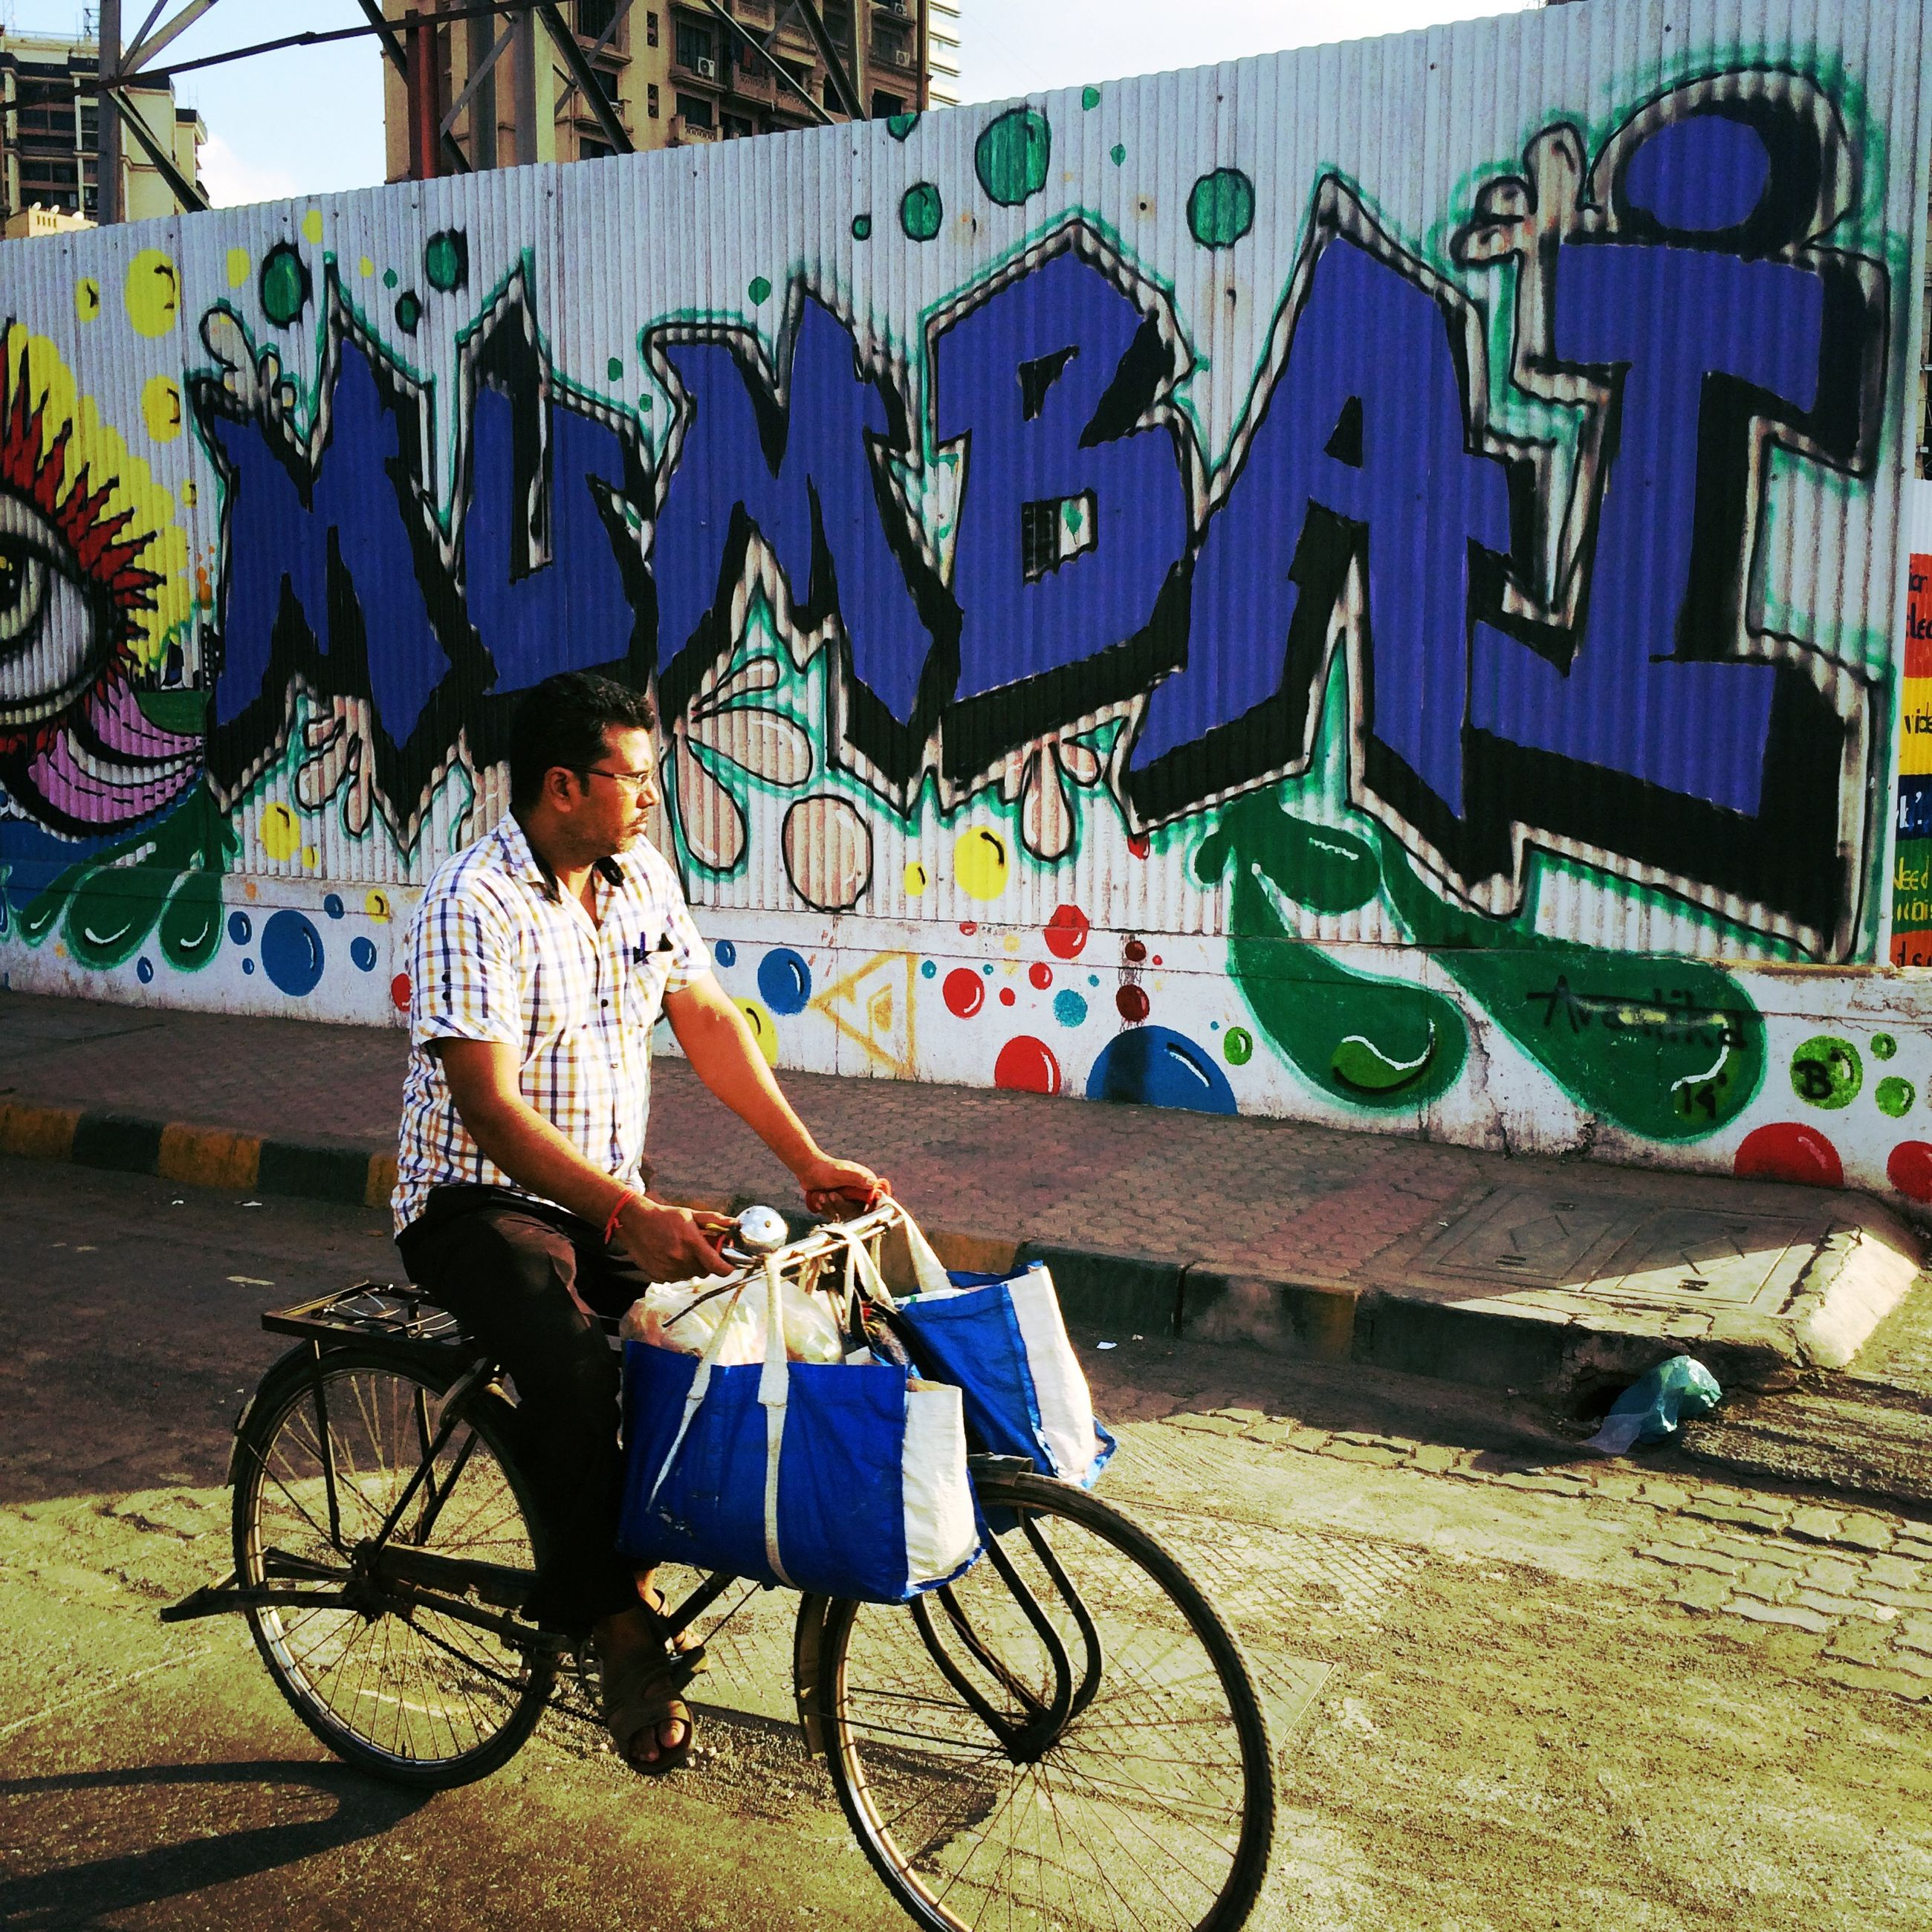 bicycle, graffiti, parking, stationary, transportation, land vehicle, parked, mode of transport, wall - building feature, built structure, text, absence, architecture, day, building exterior, western script, sunlight, outdoors, multi colored, no people